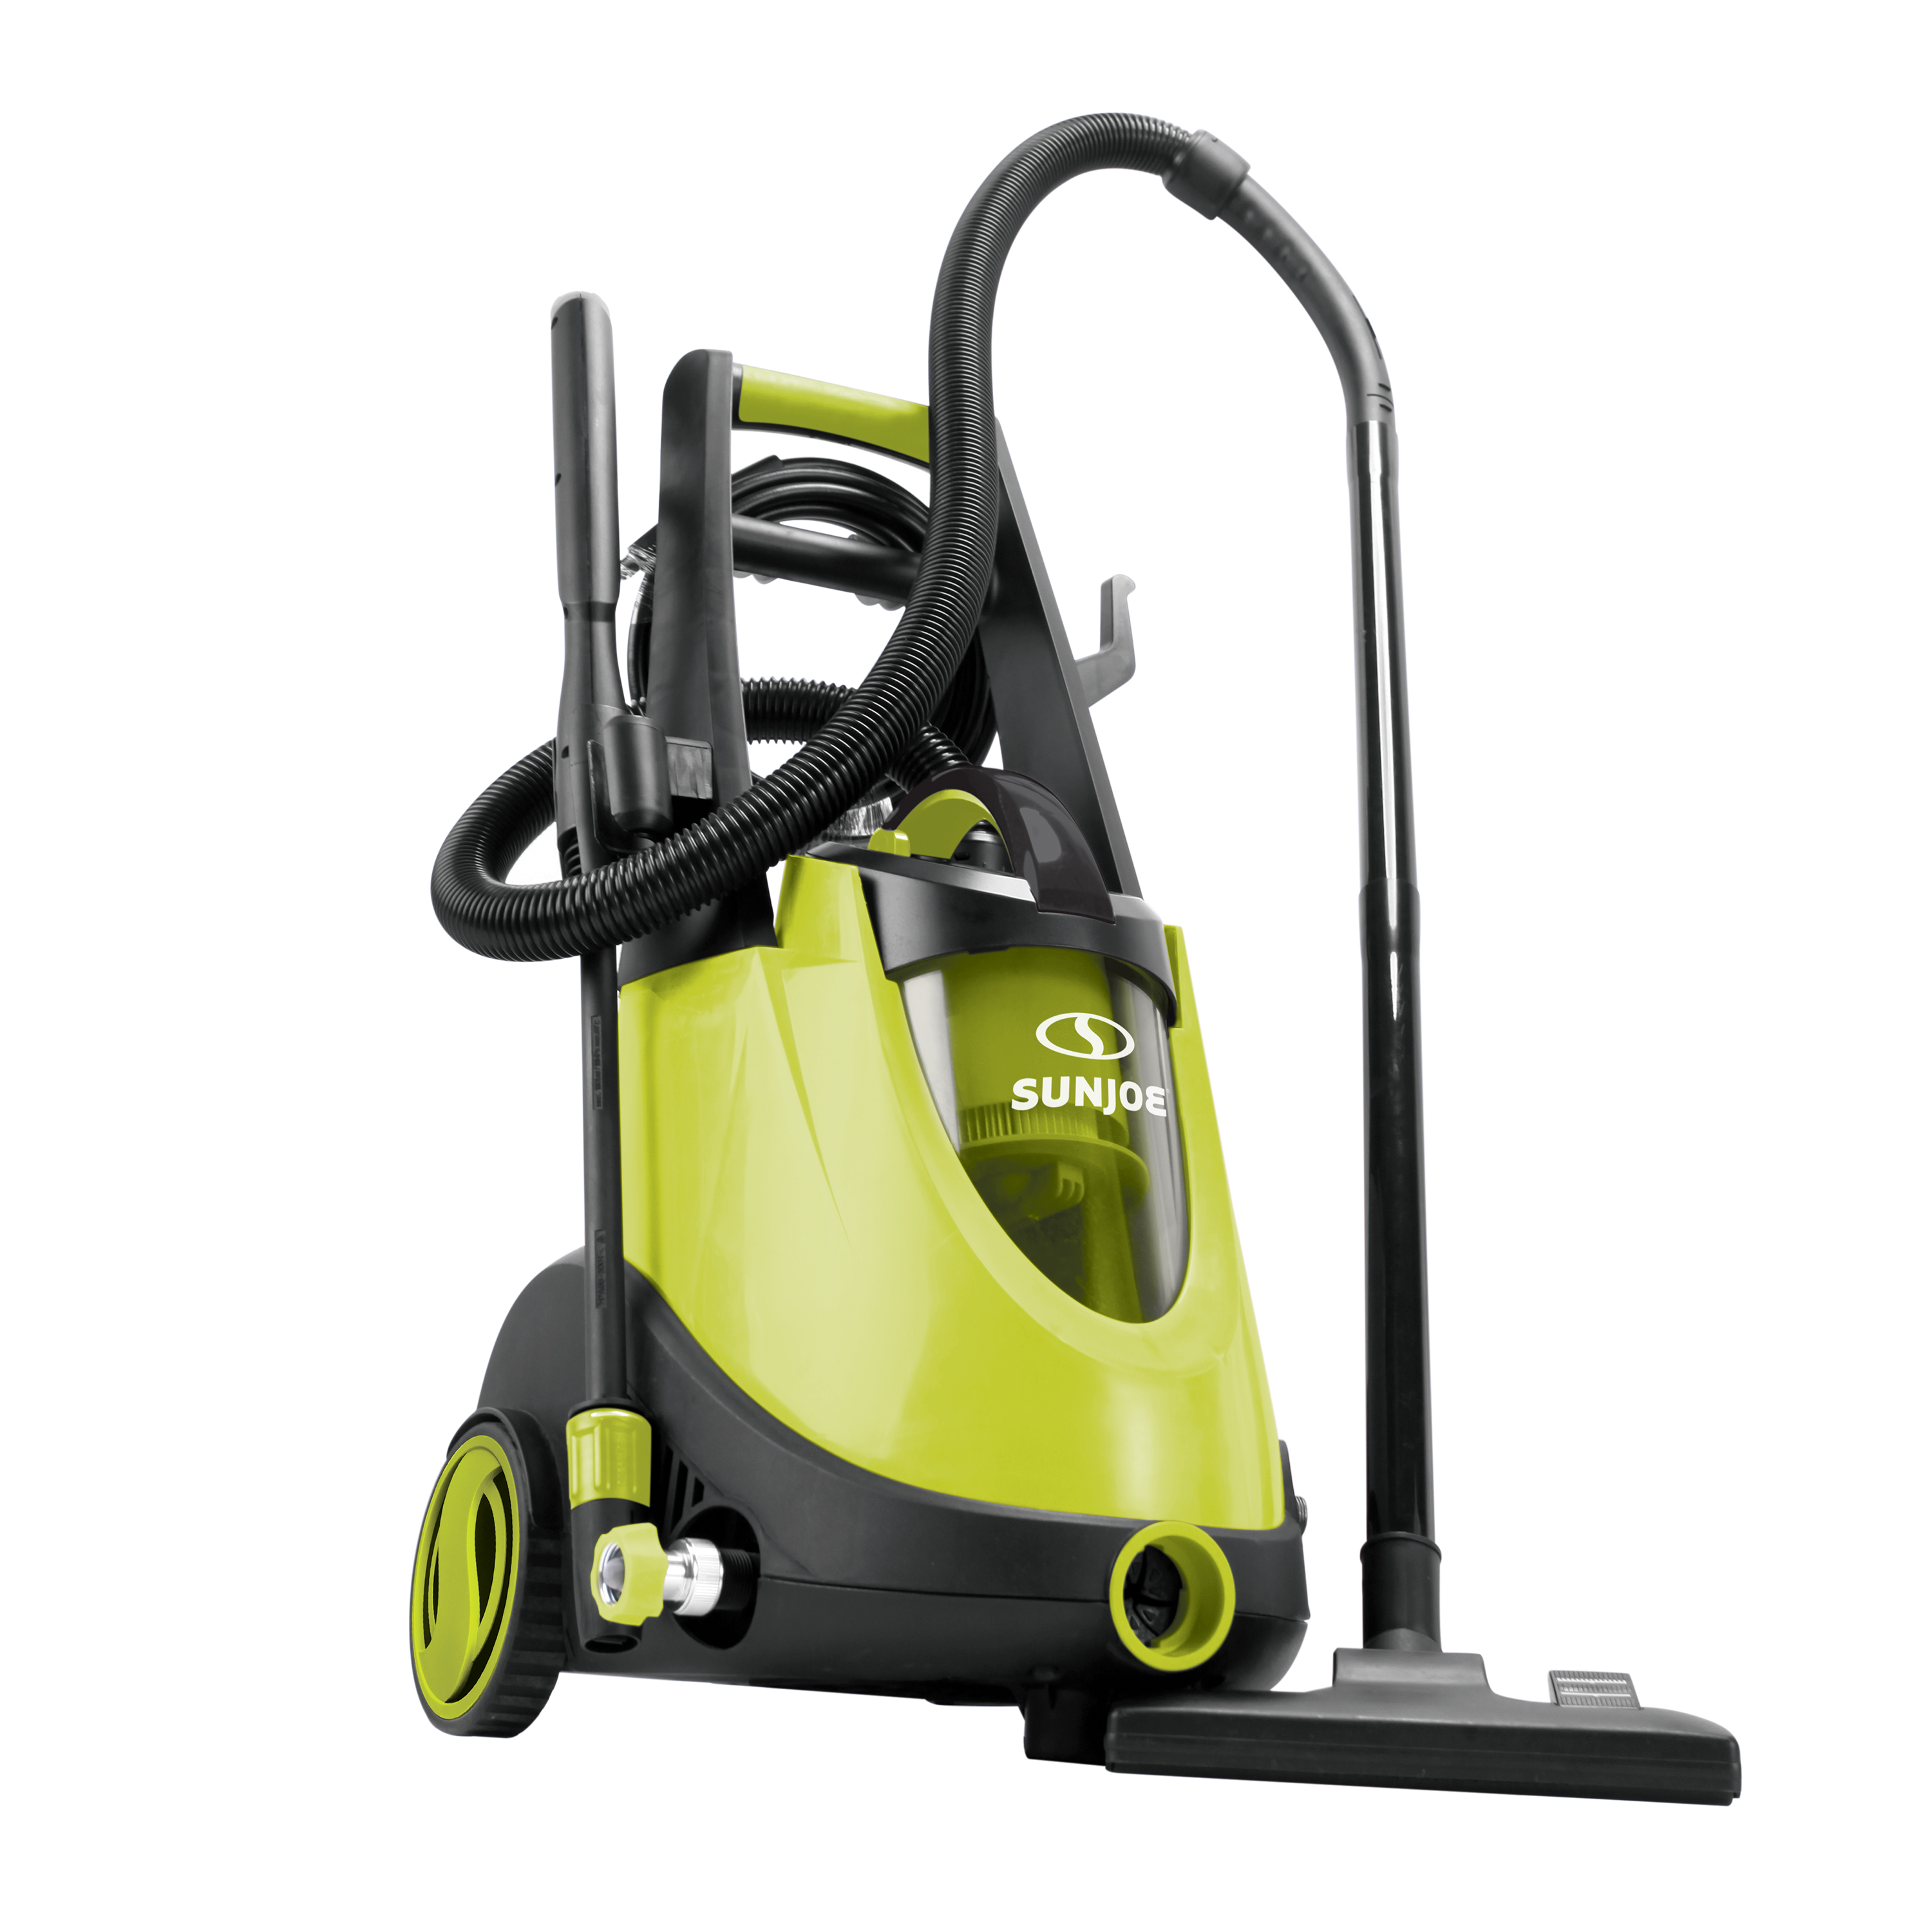 Sun Joe SPX7000E 2-in-1 Electric Pressure Washer | 1750-Max PSI | 1.6-GPM | Built In Wet/Dry Vacuum System